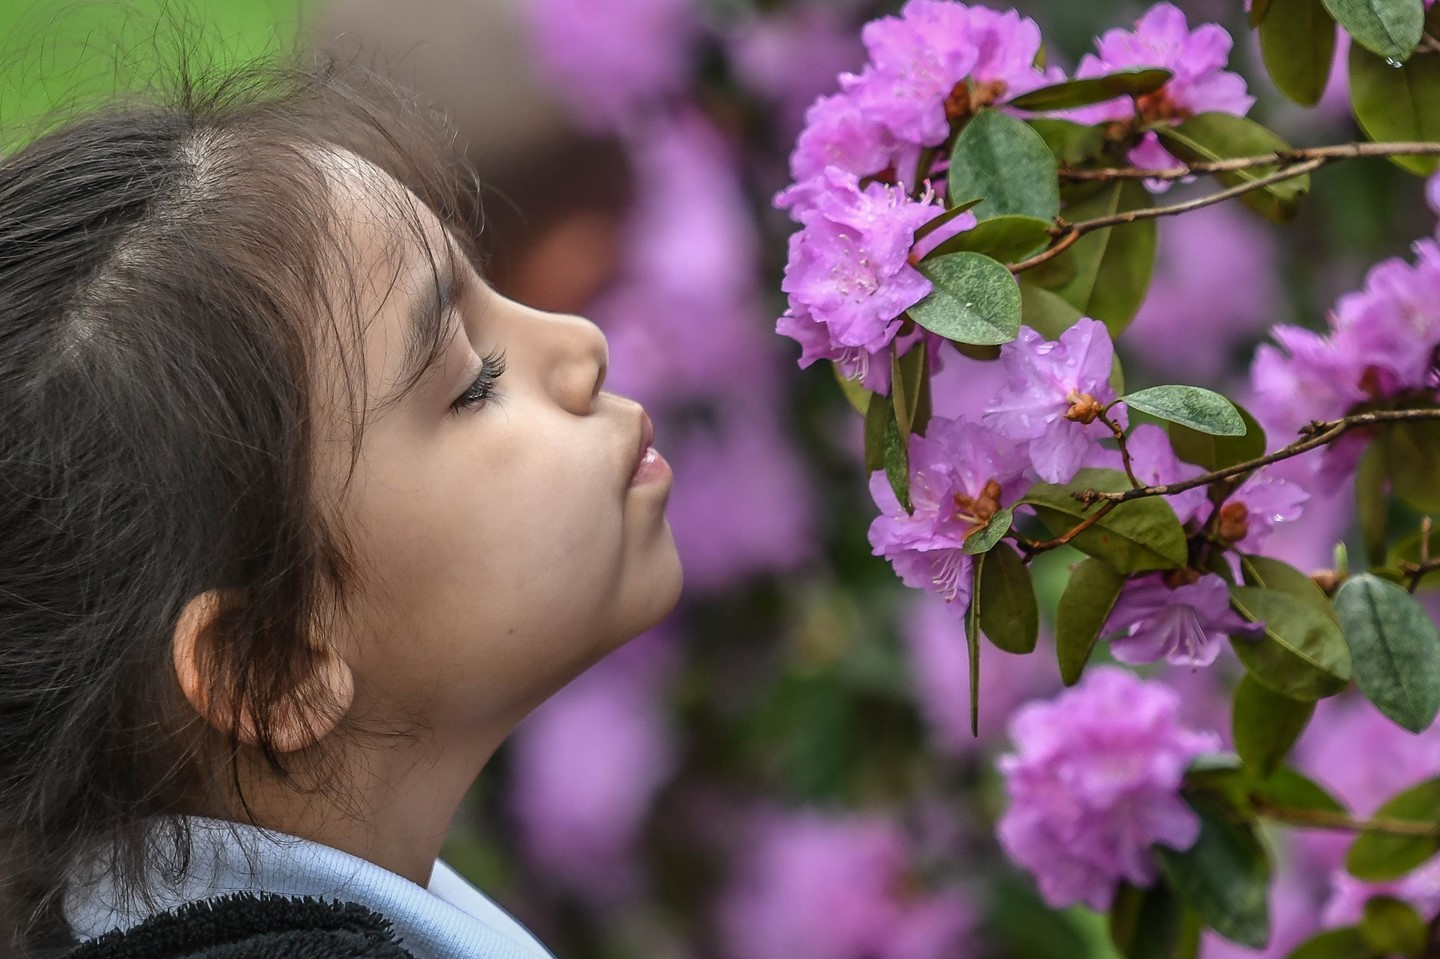 A scholar stops to smell the flowers during a 3 C's field trip